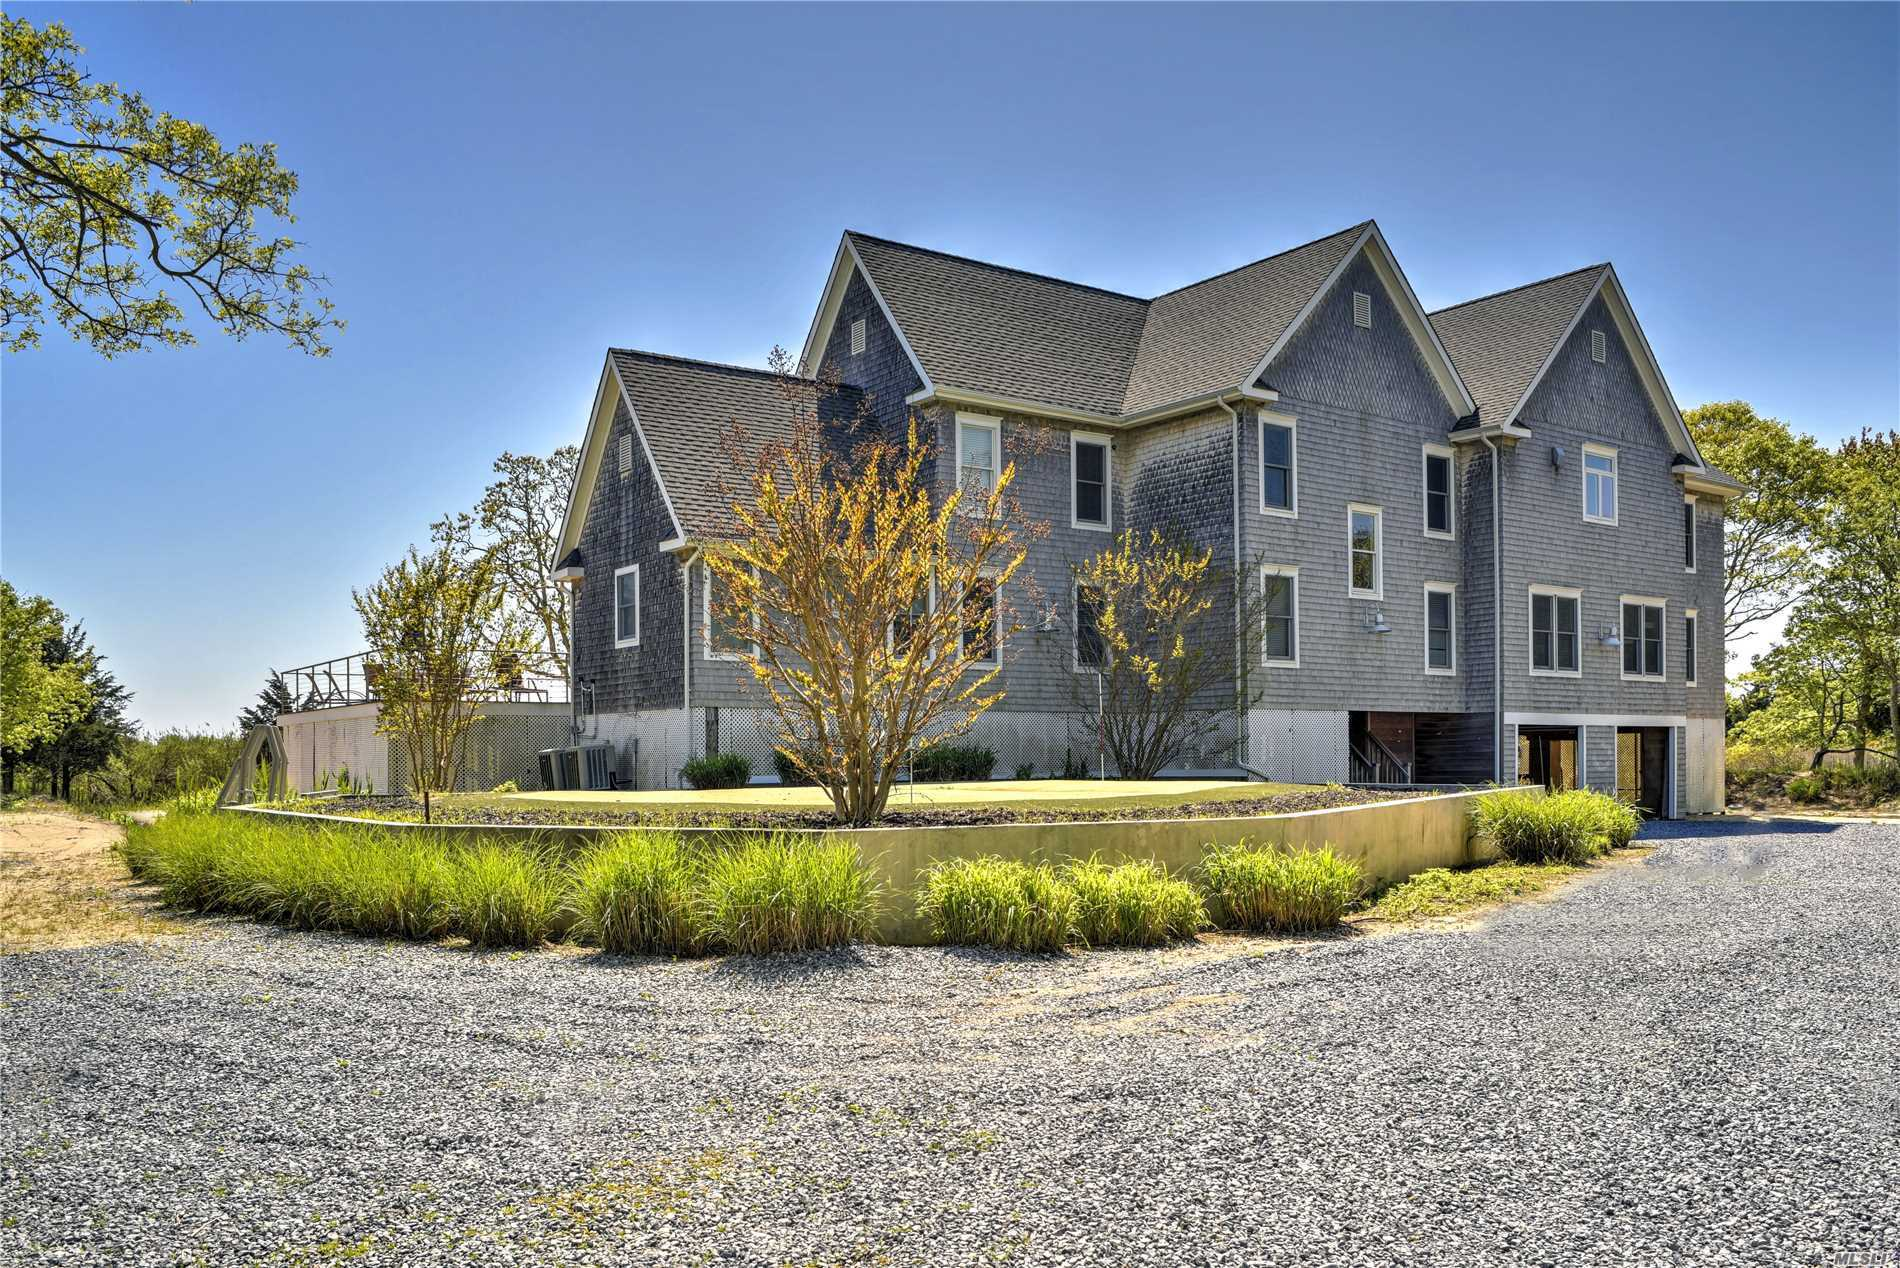 9326 Main Bayview Rd - Southold, New York